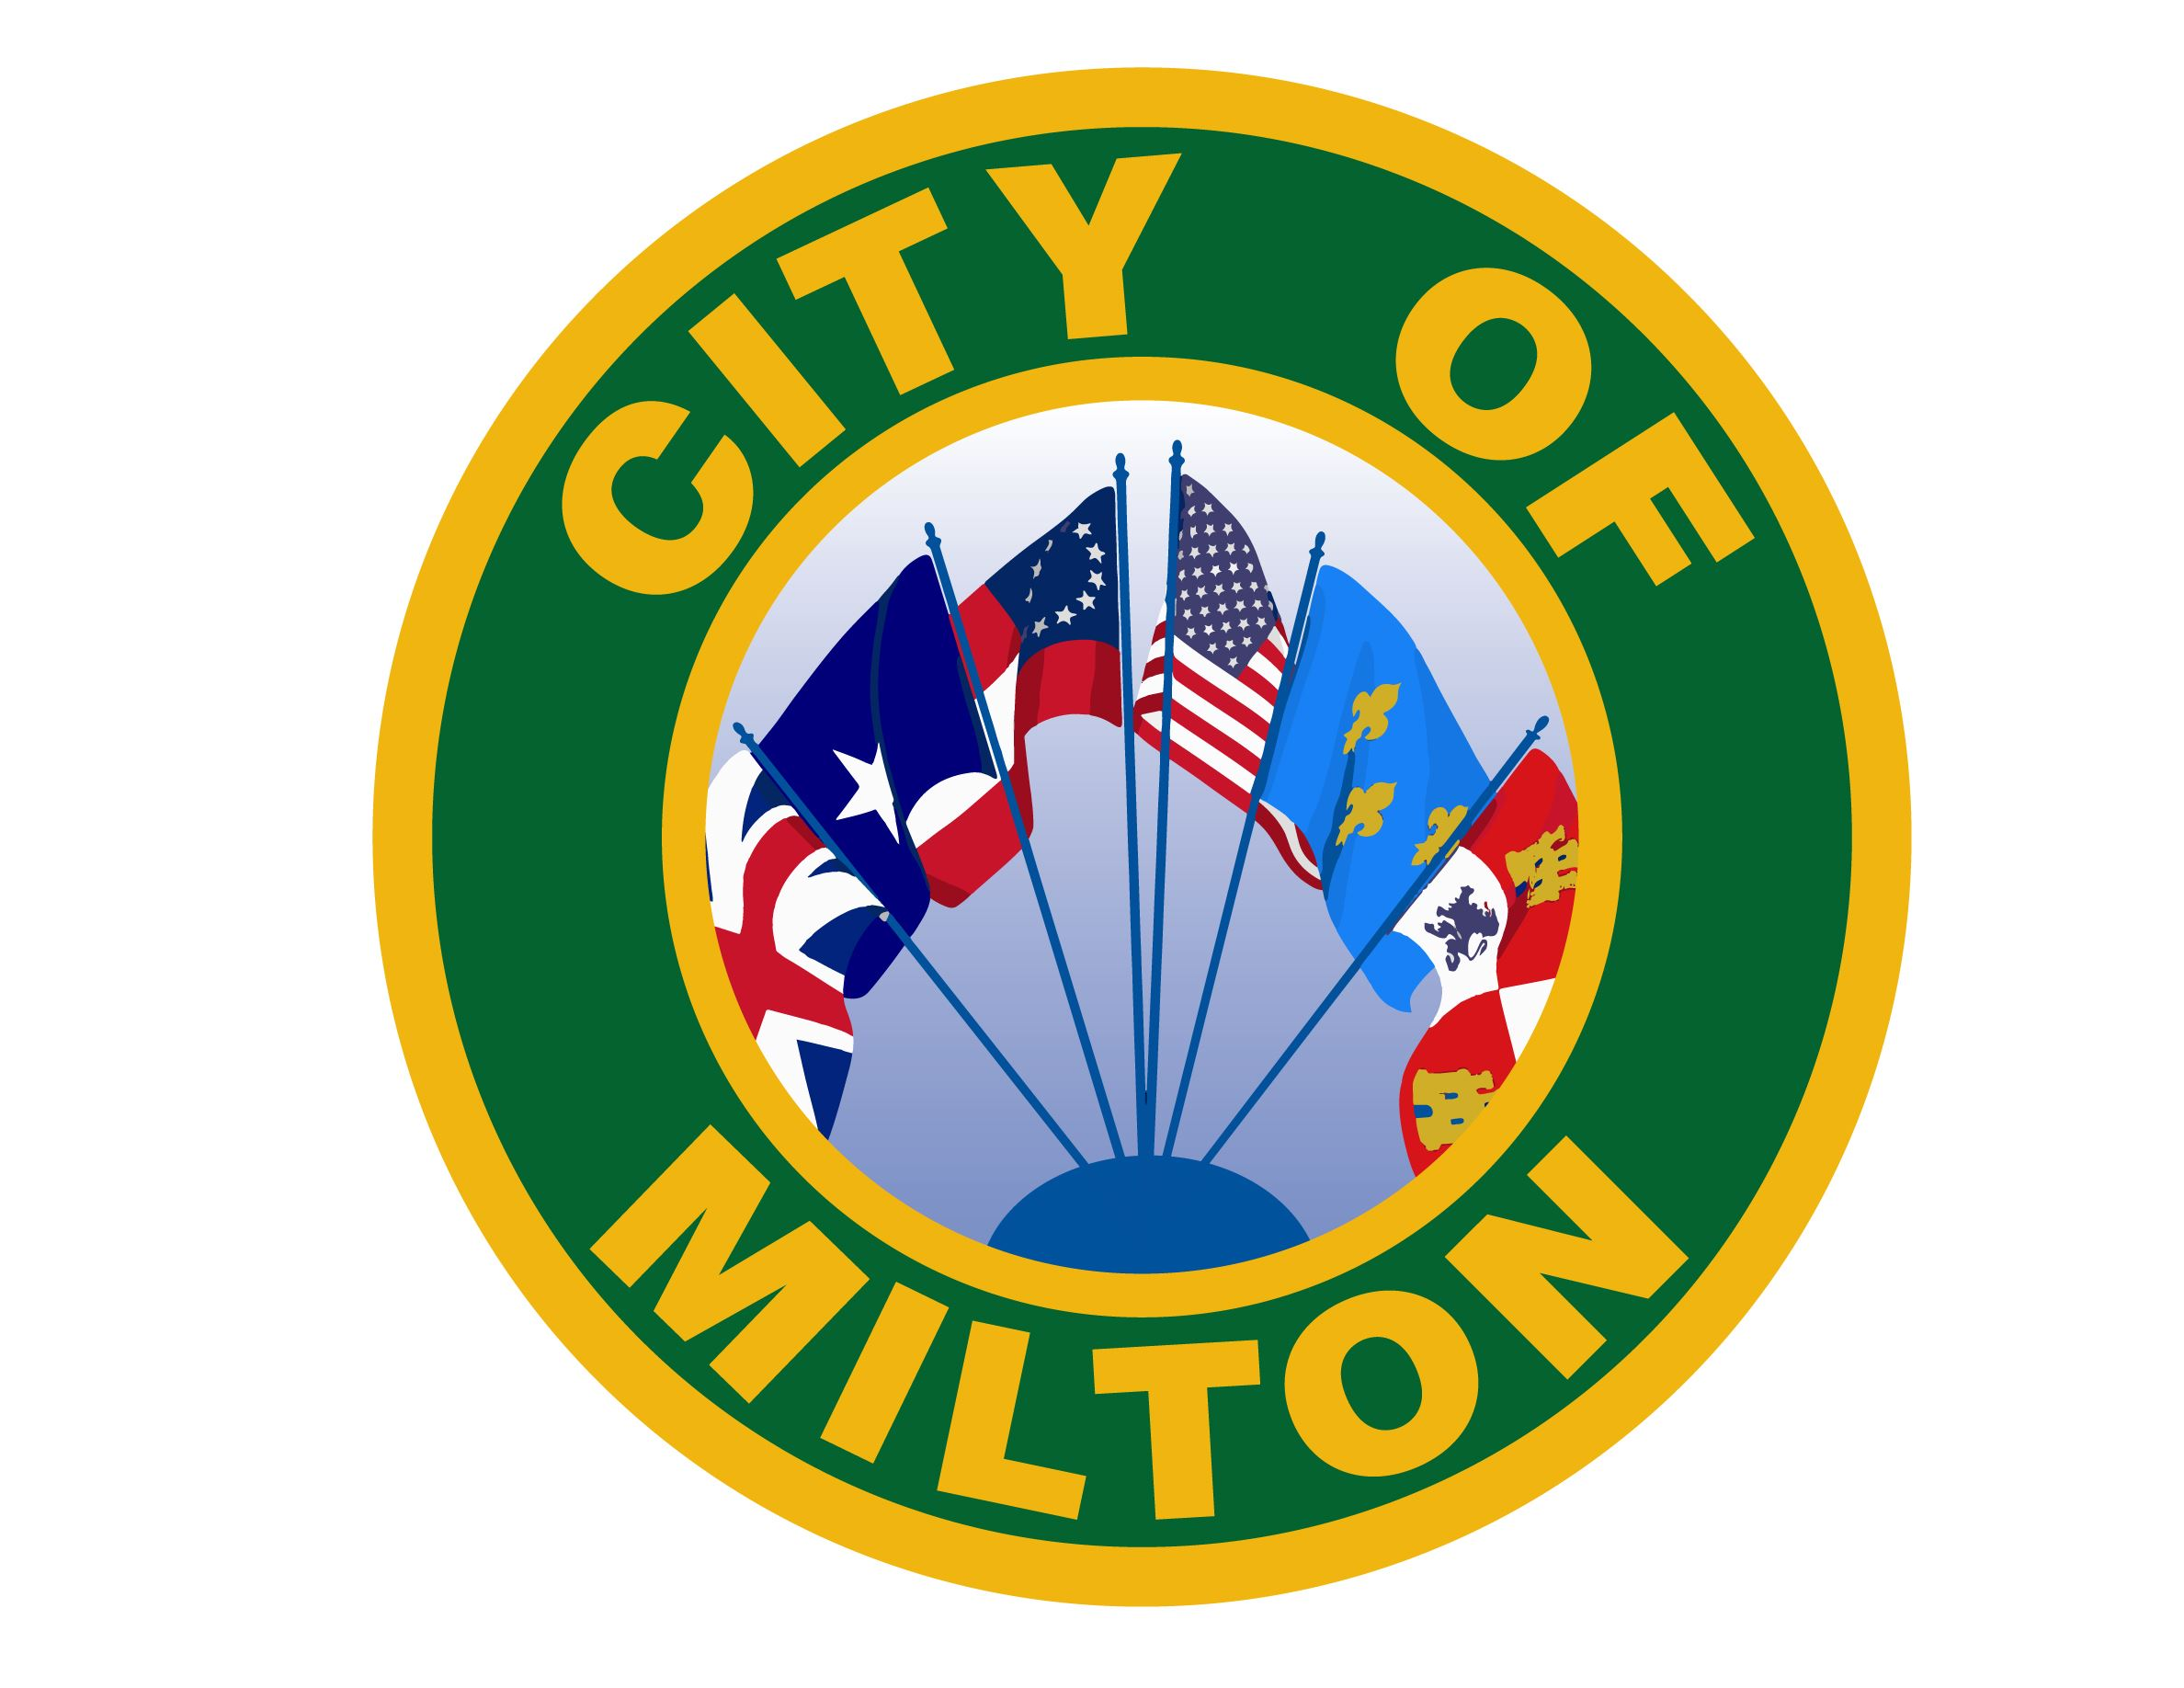 New City of Milton Offical Seal